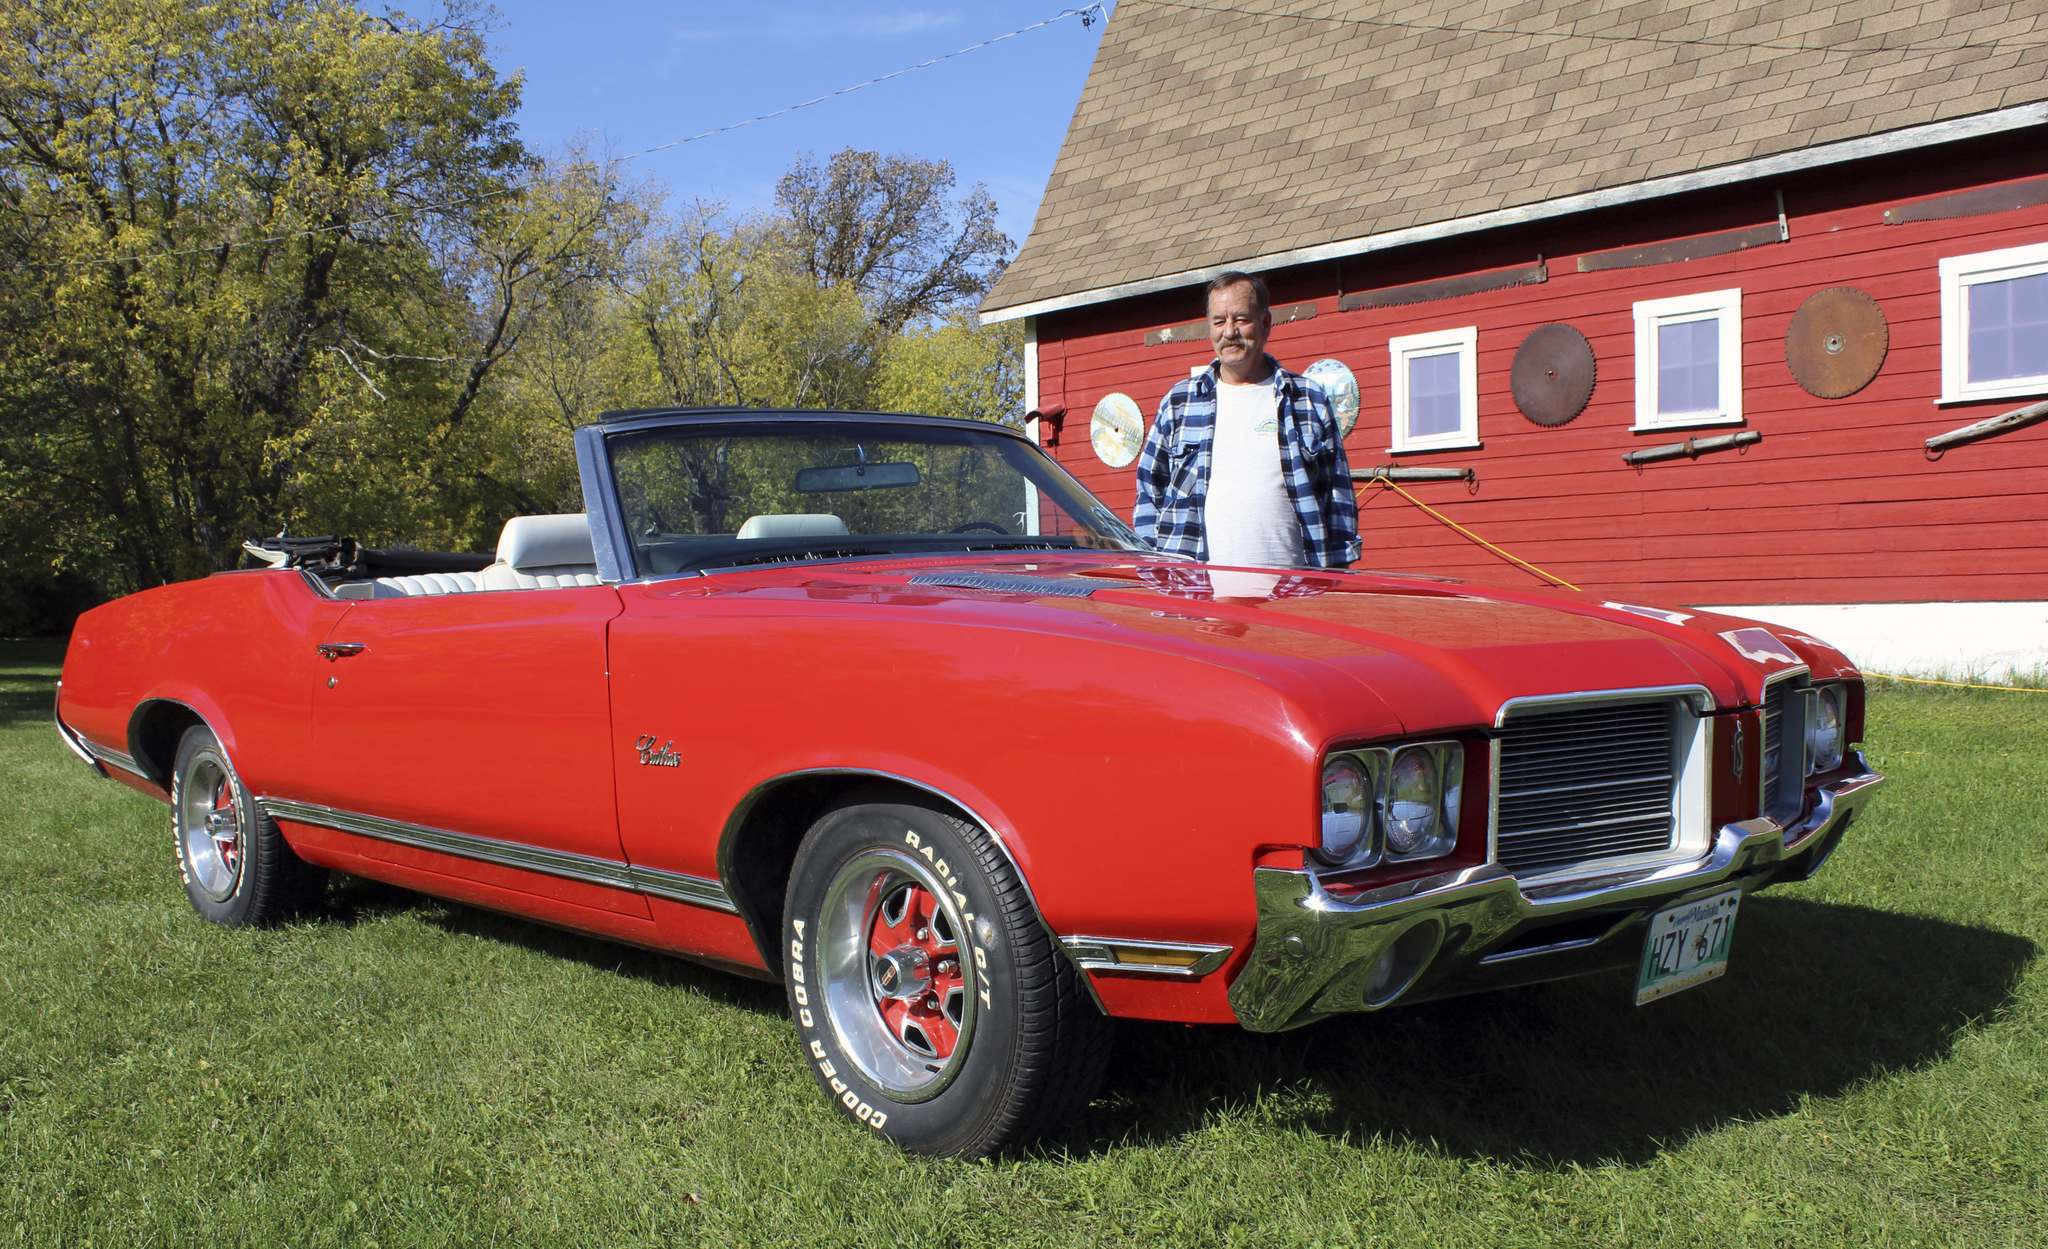 Larry D'Argis / Winnipeg Free Press</p><p>Jack Hare of Libau has owned this 1971 Oldsmobile Cutlass Supreme convertible for 31 years.</p>